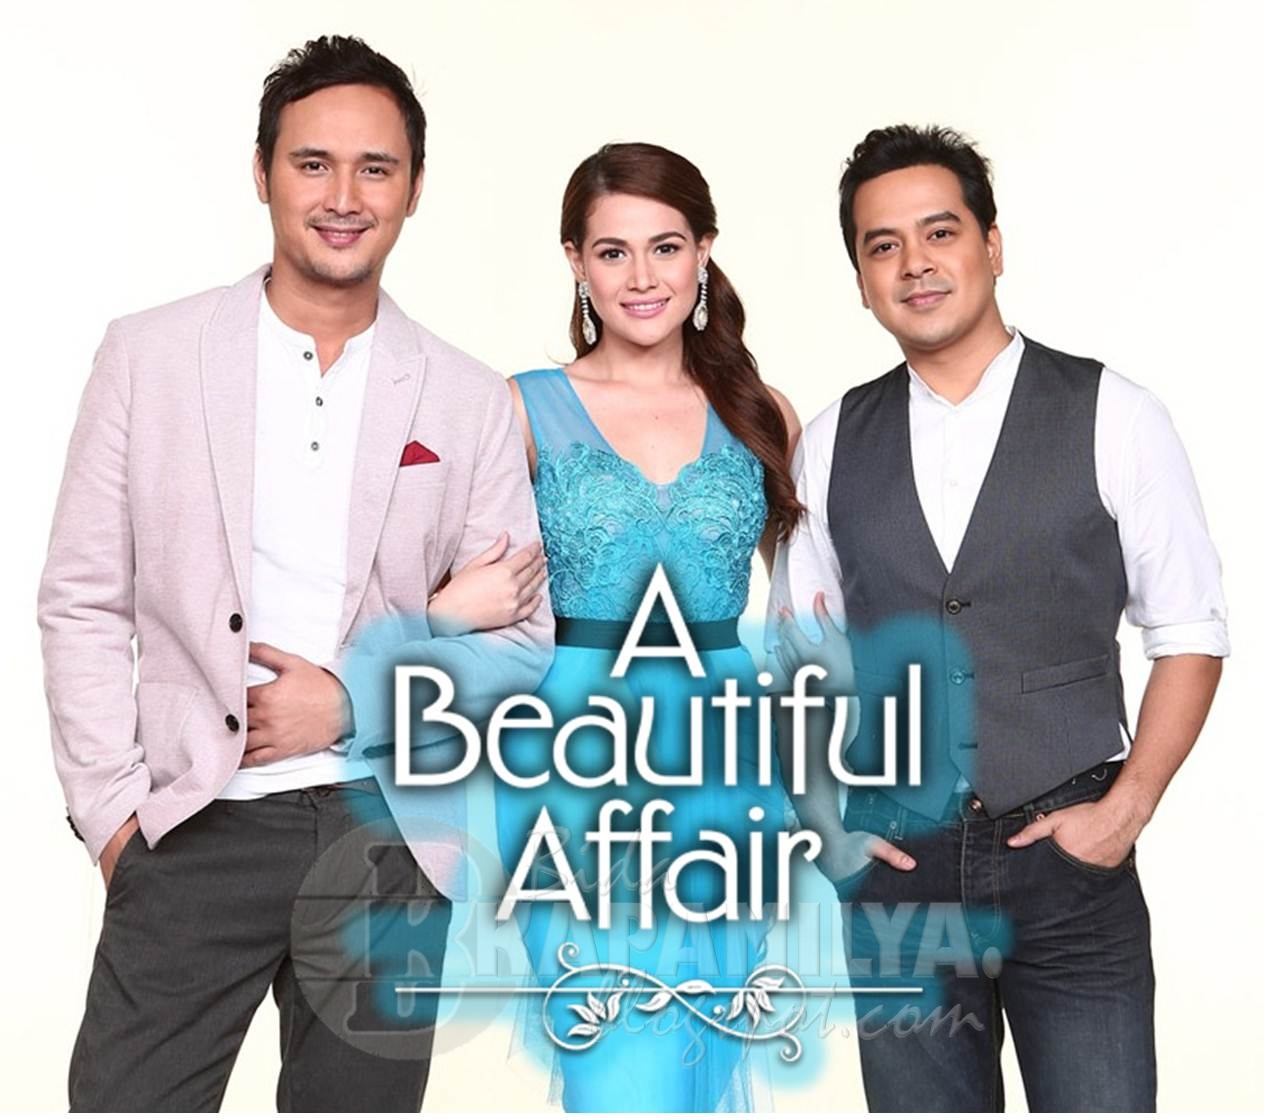 A BEAUTIFUL AFFAIR - OCT. 29, 2012 PART 4/4